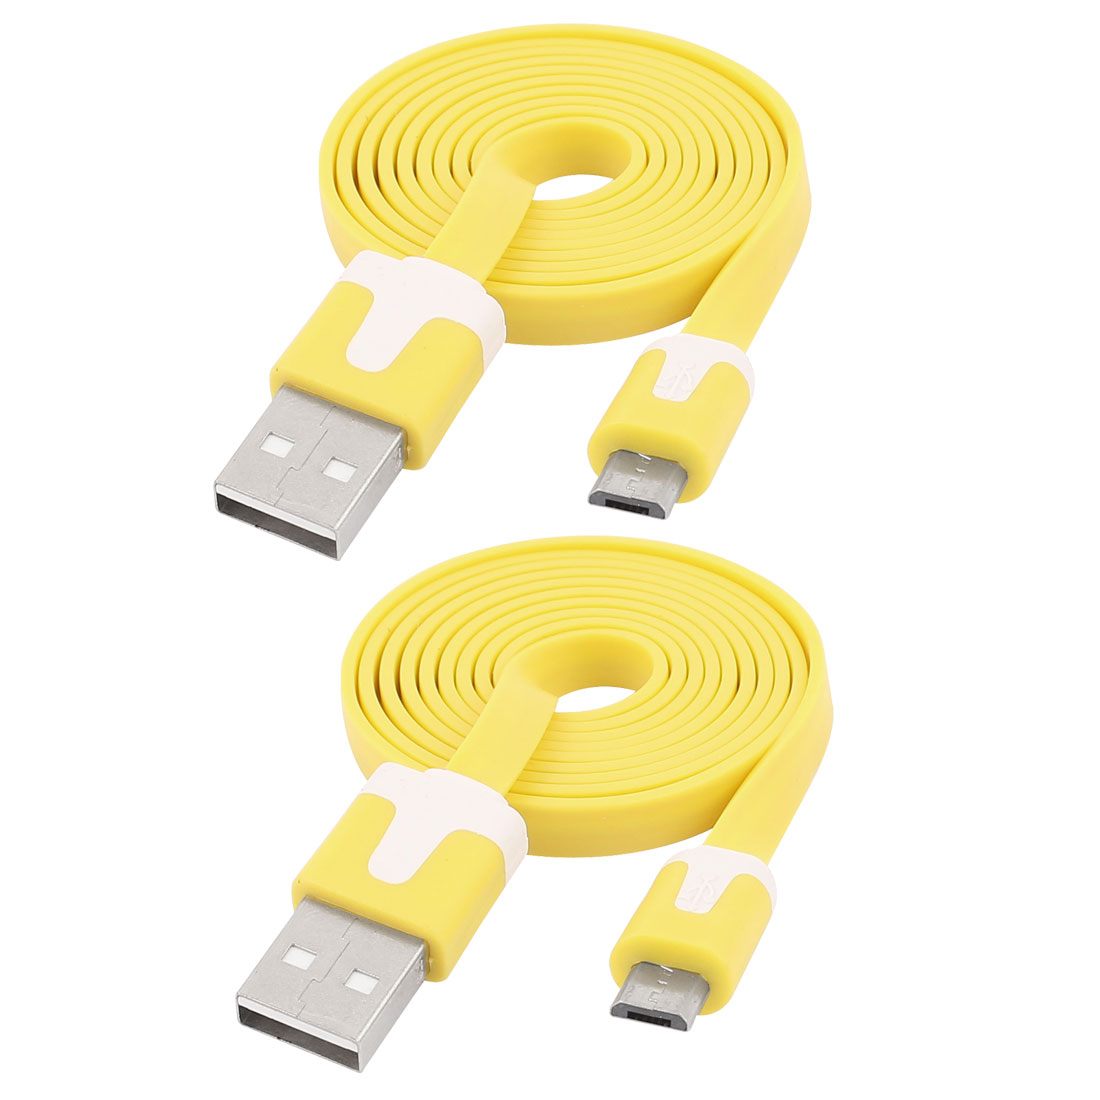 1M USB 2.0 Type A Male to Micro 5 Pin USB Male M/M PC Data Changer Cable Cord Yellow 2pcs